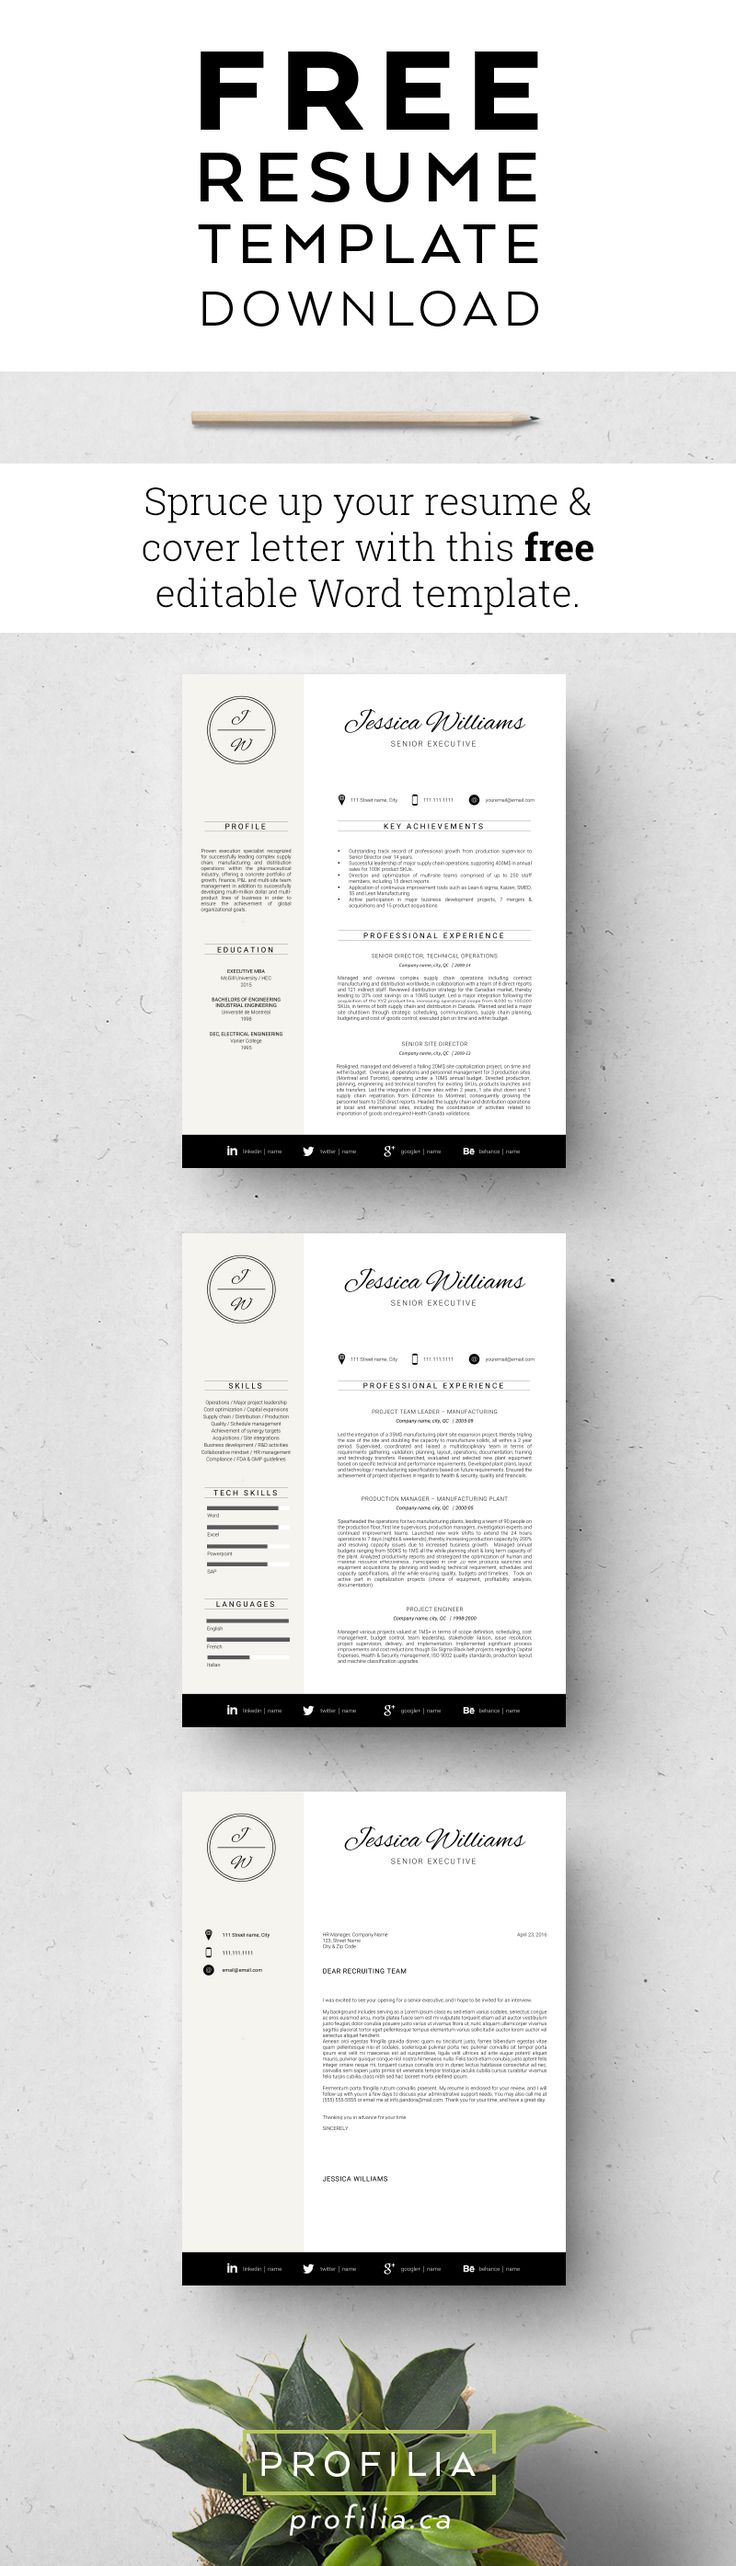 best 25 cover letters ideas on pinterest cover letter tips resume and resume tips - Resume Cover Letter Word Template